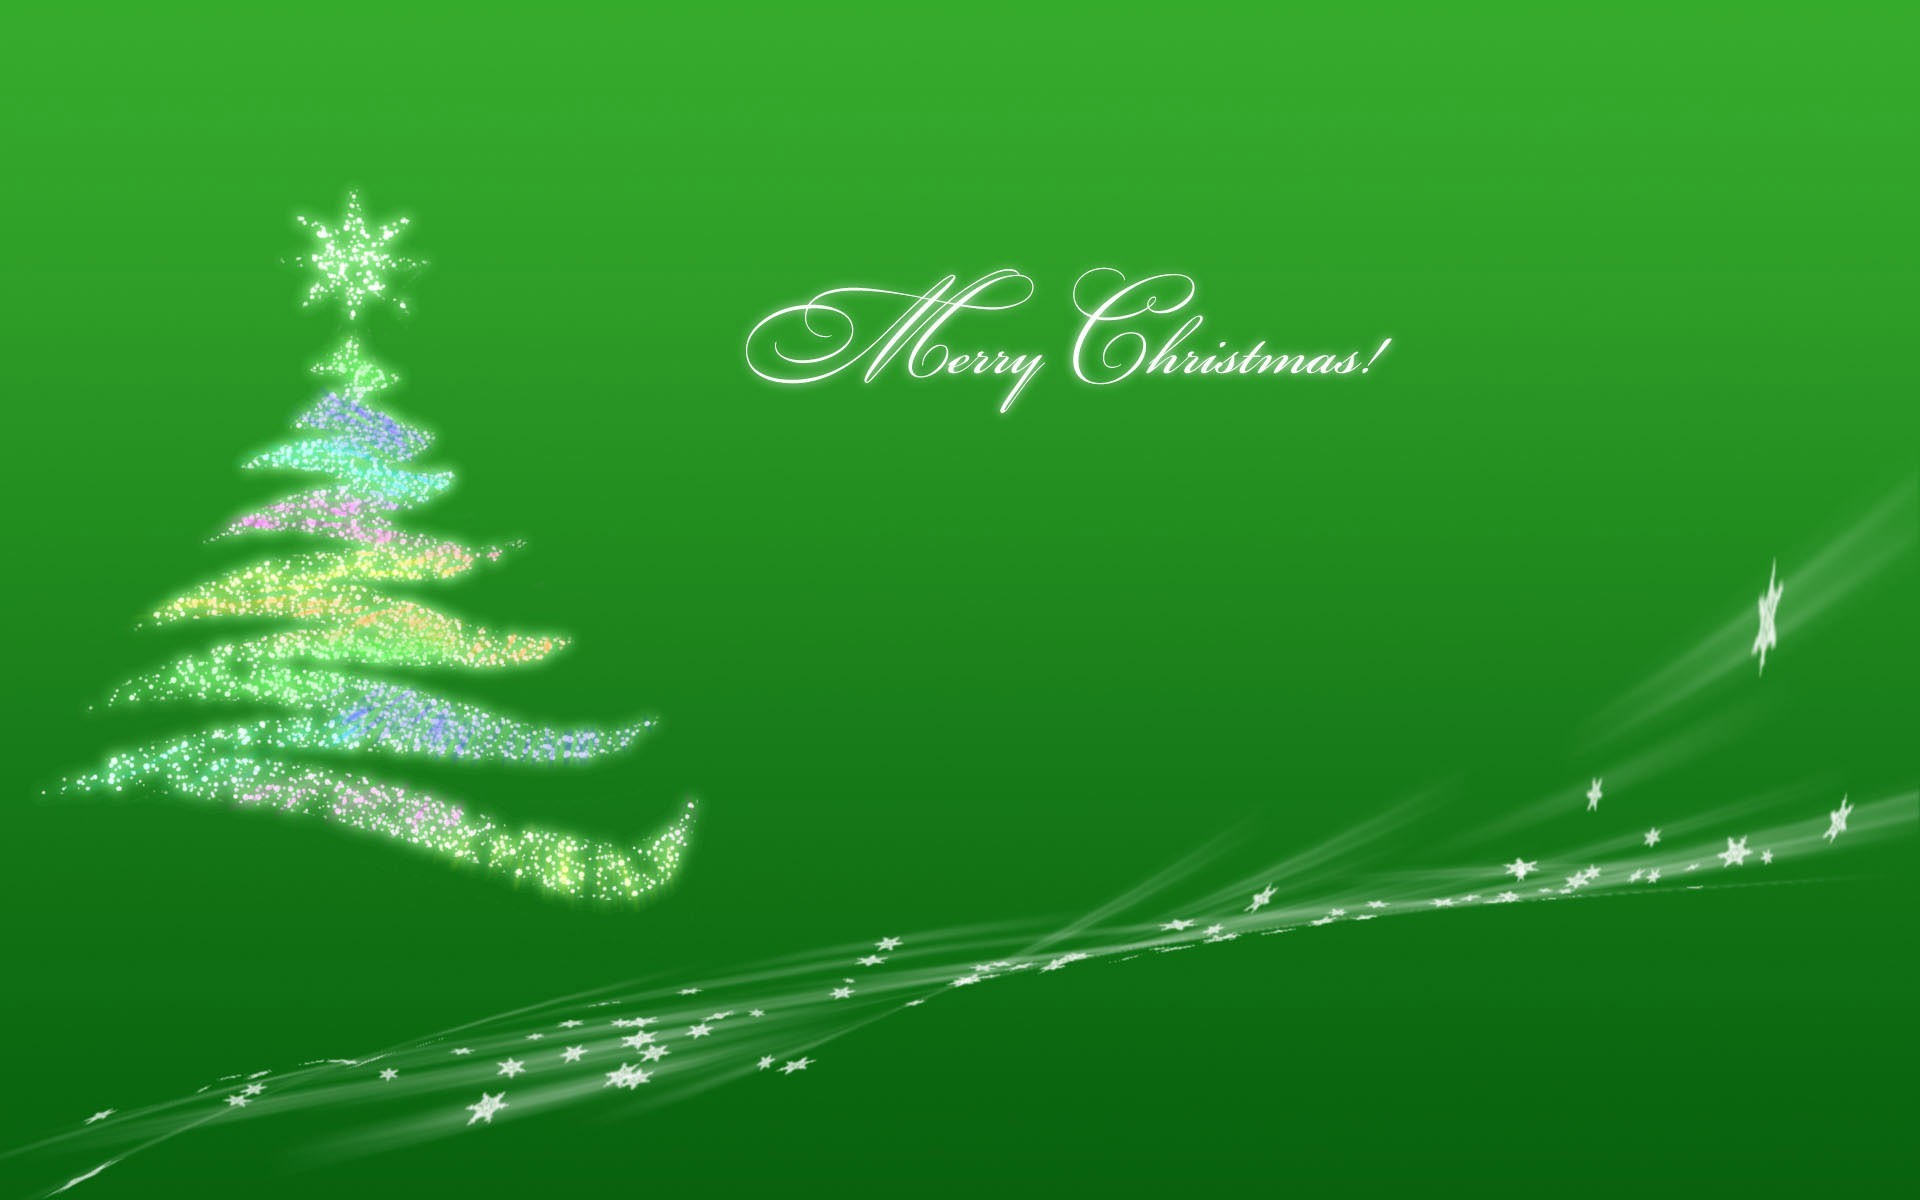 Green nature Christmas Christmas HD Wallpaper